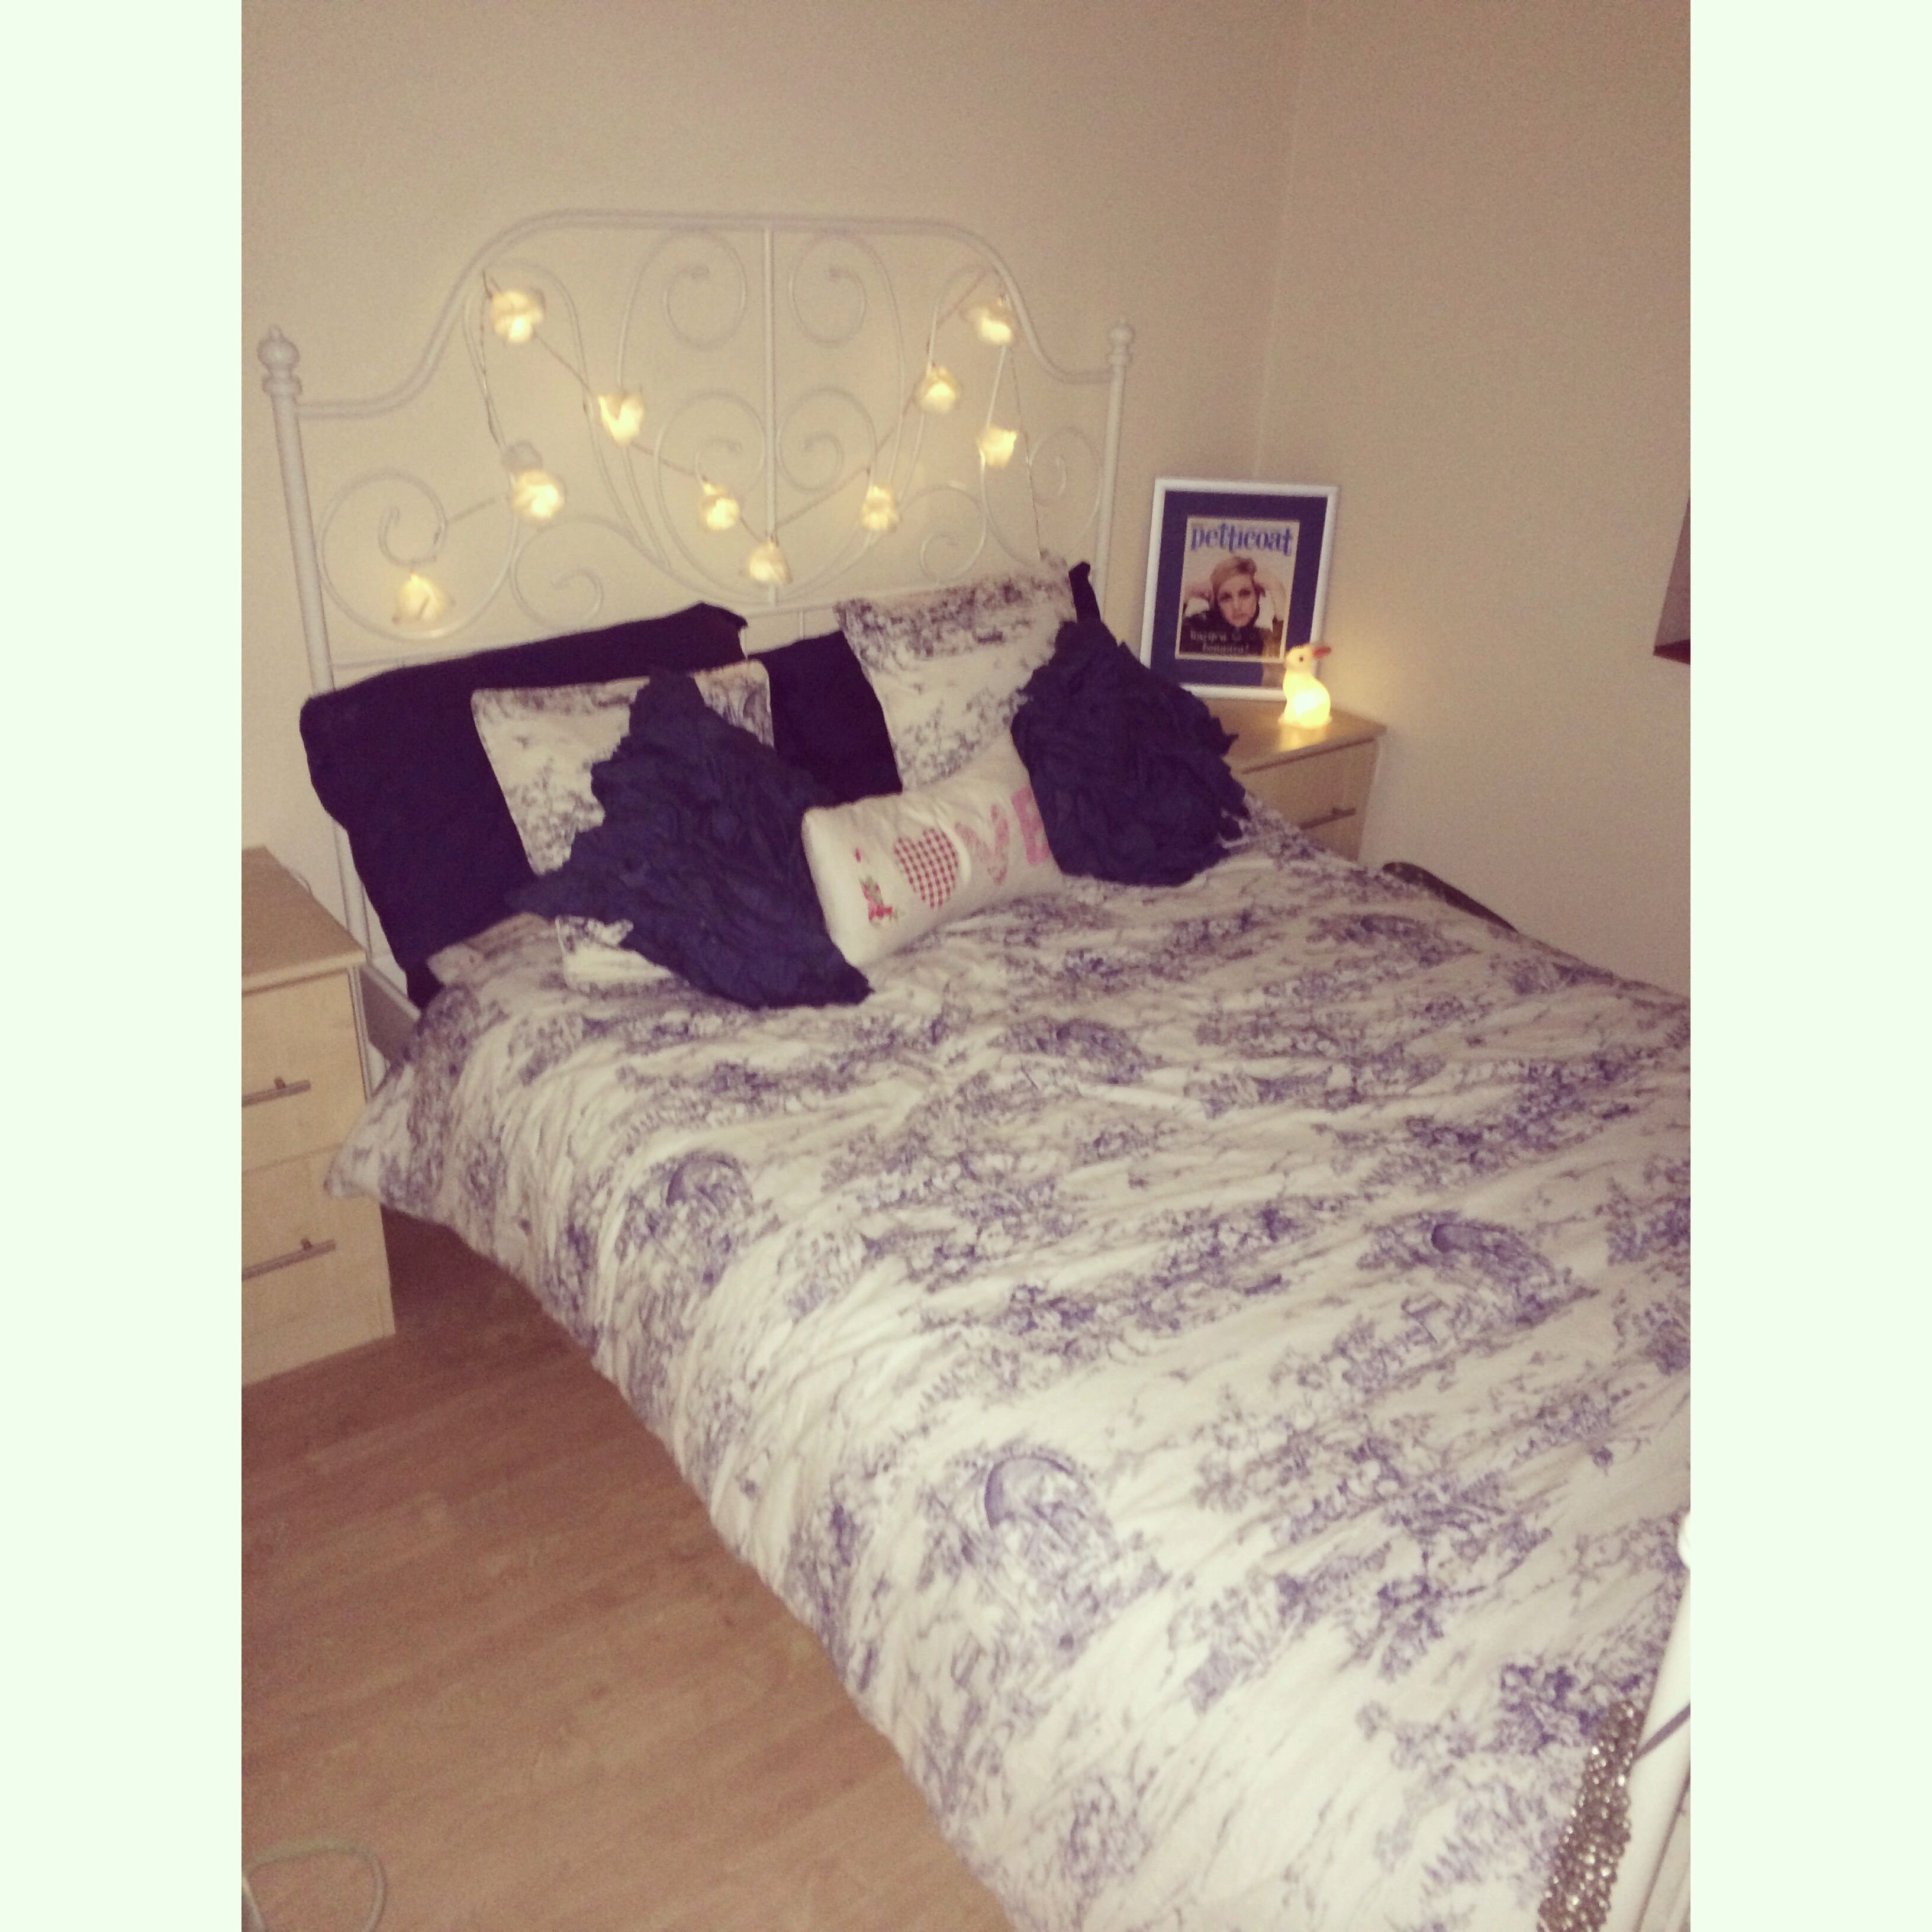 Best Leirvik Ikea Bed Fairy Lights Twiggy Deco Pinterest With Pictures